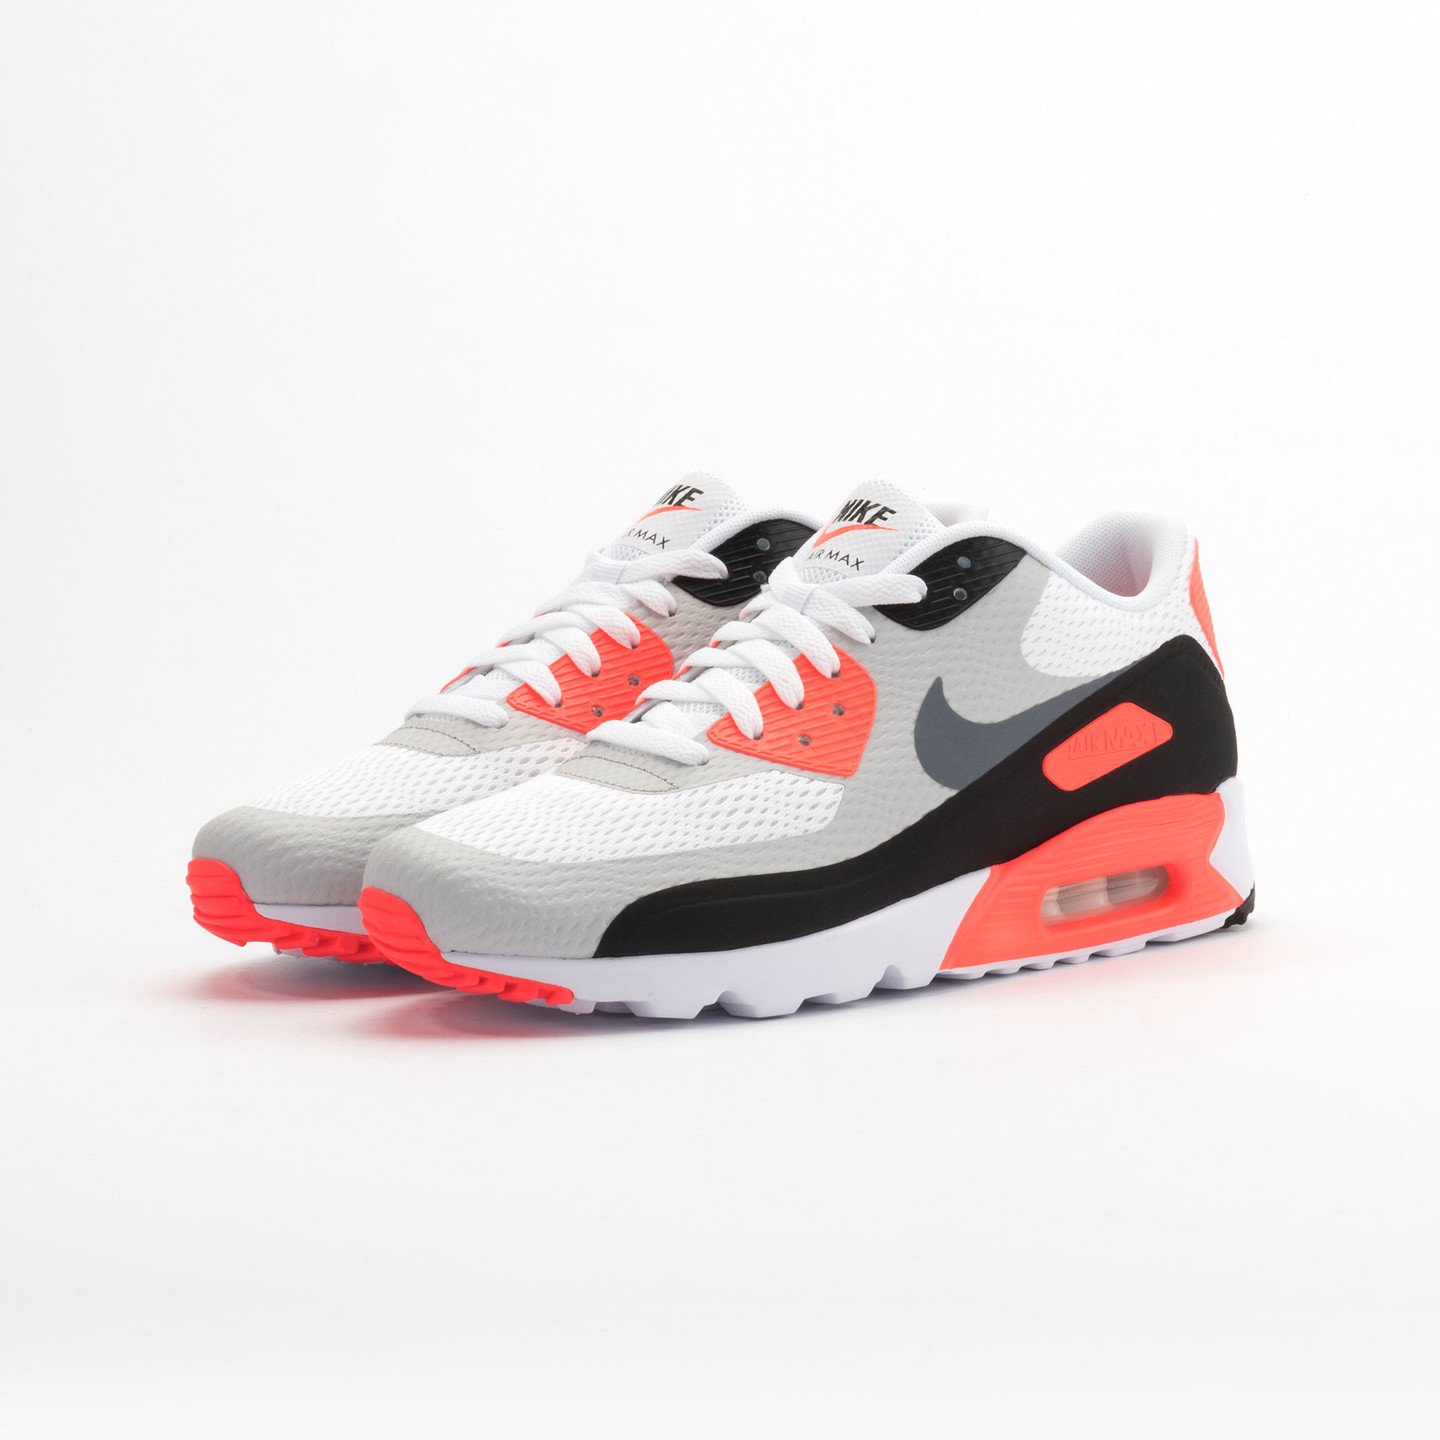 Nike Air Max 90 OG Essential White / Black / Infrared 819474-106-42.5